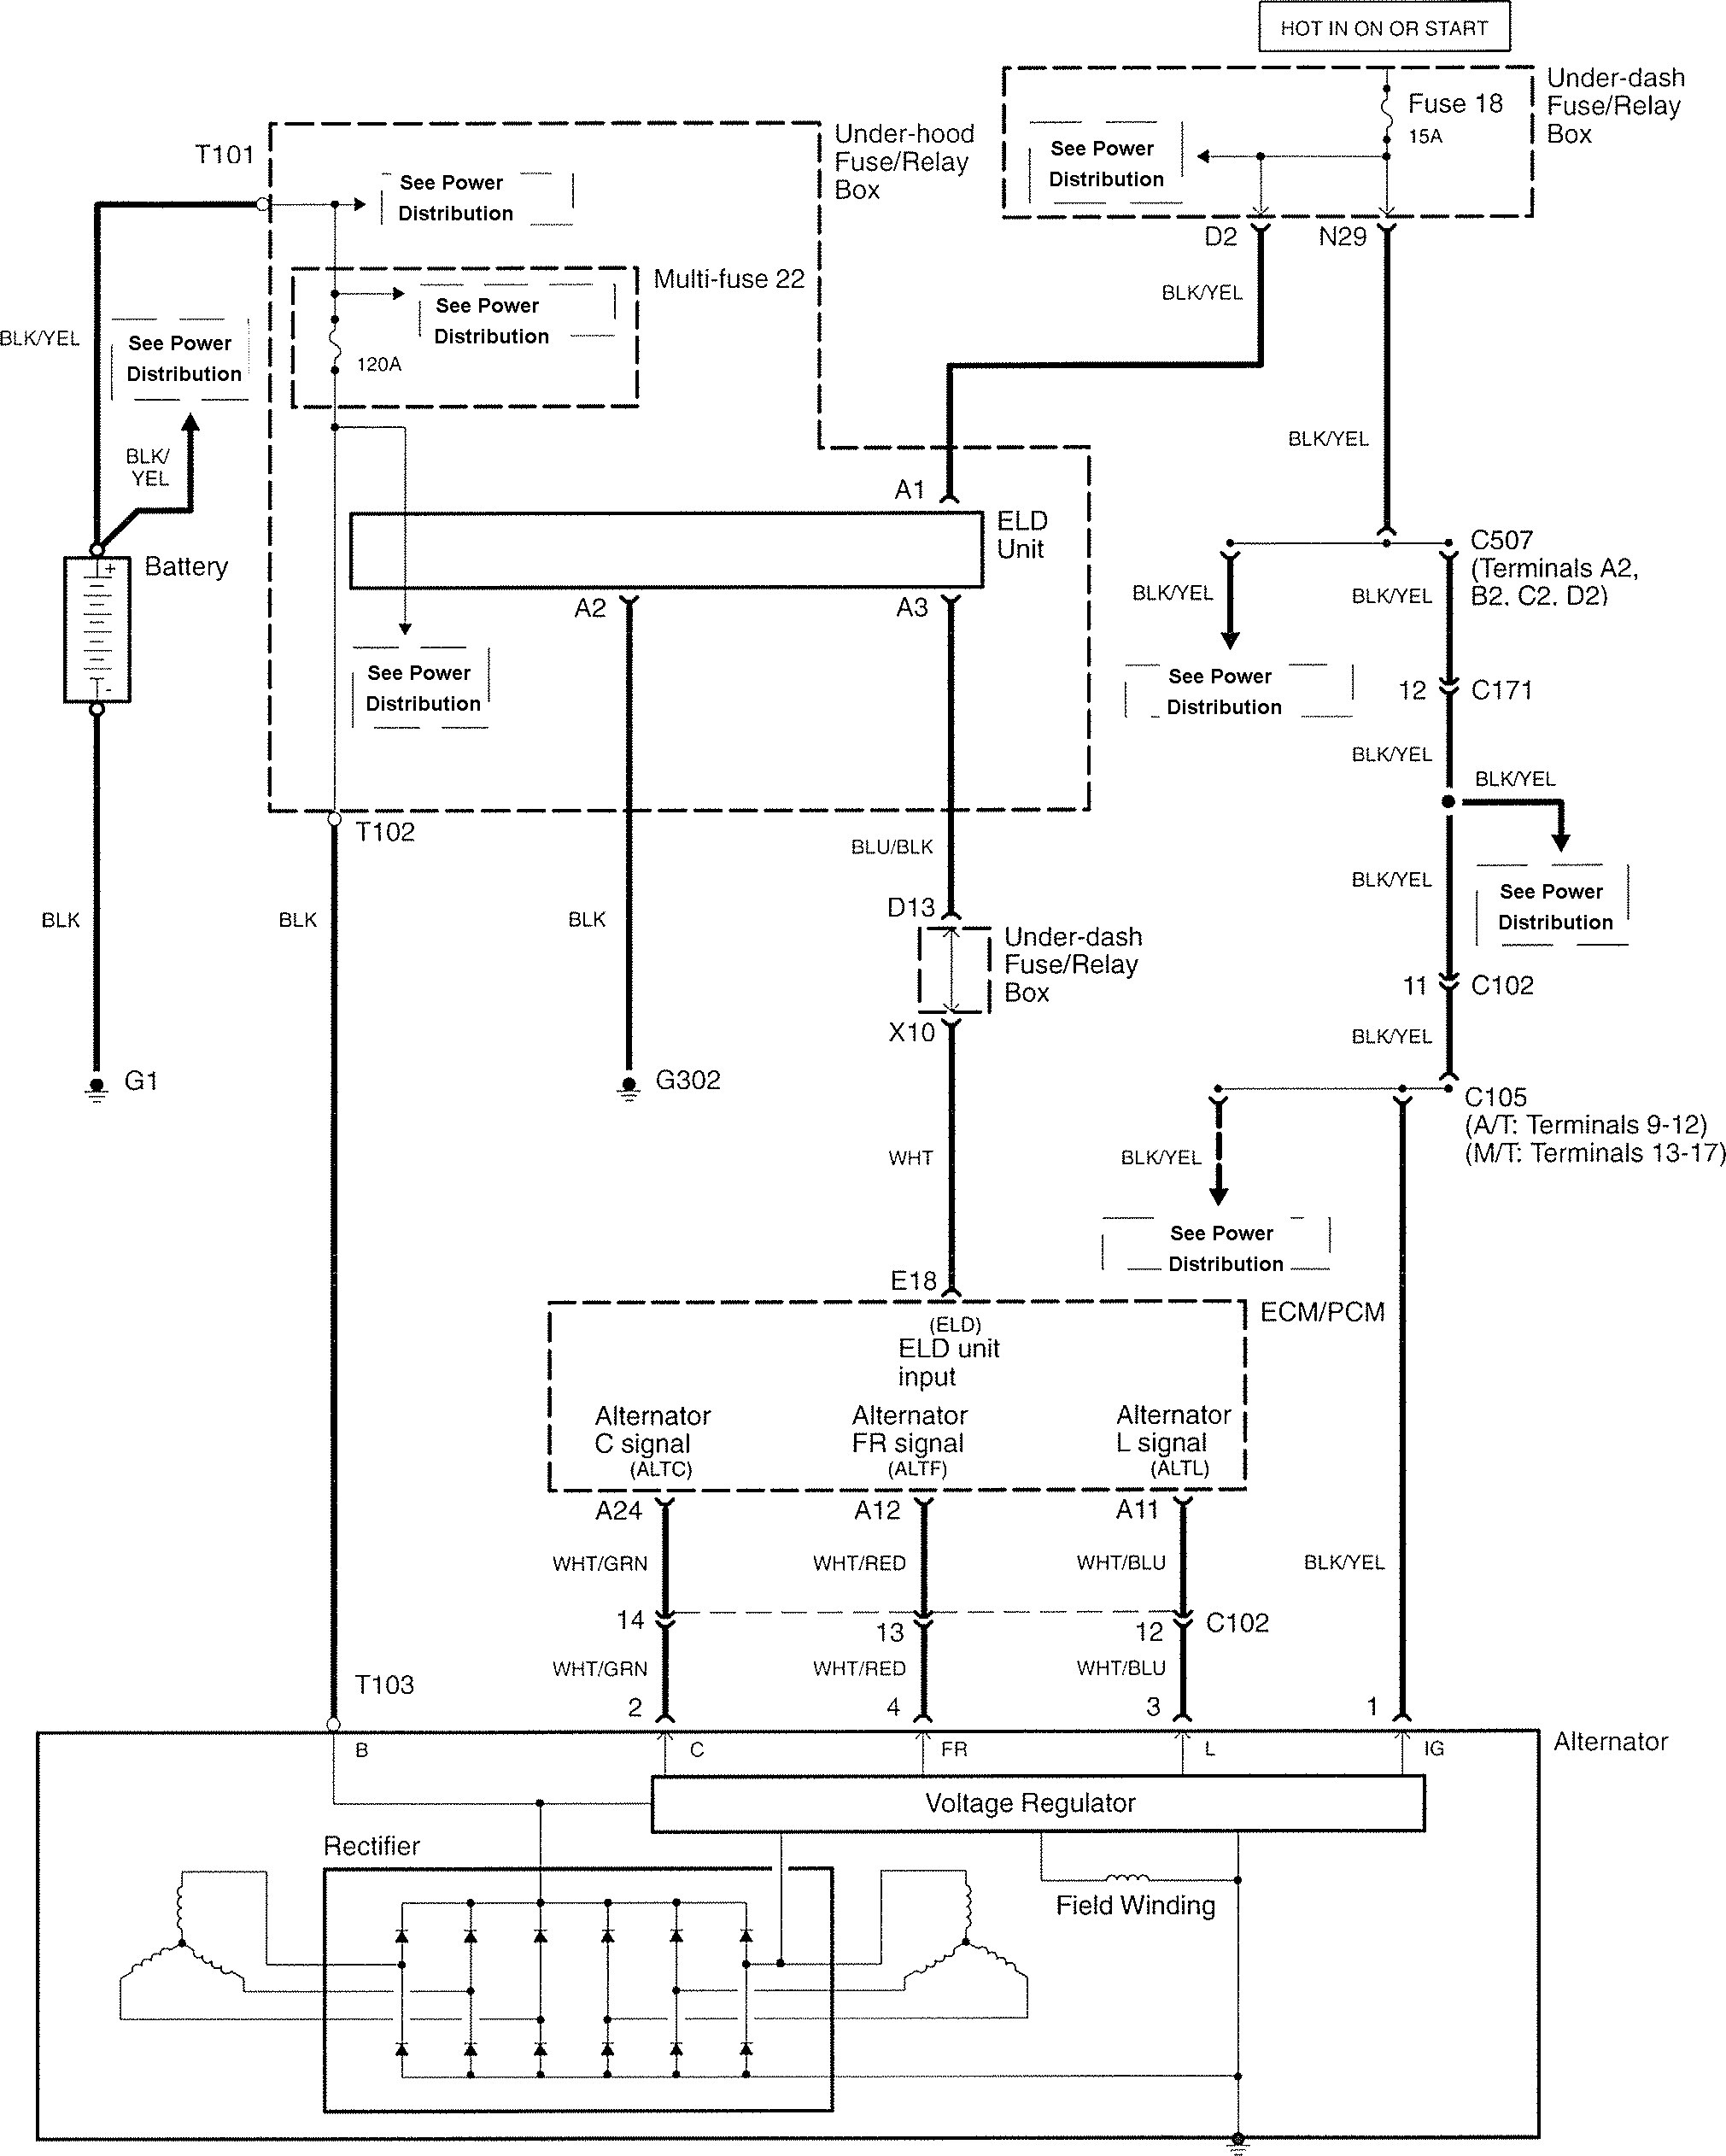 DIAGRAM] 2005 Acura Tl Wiring Diagram FULL Version HD Quality Wiring Diagram  - DIAGRAMSENTENCE.VIRTUAL-EDGE.ITvirtual-edge.it